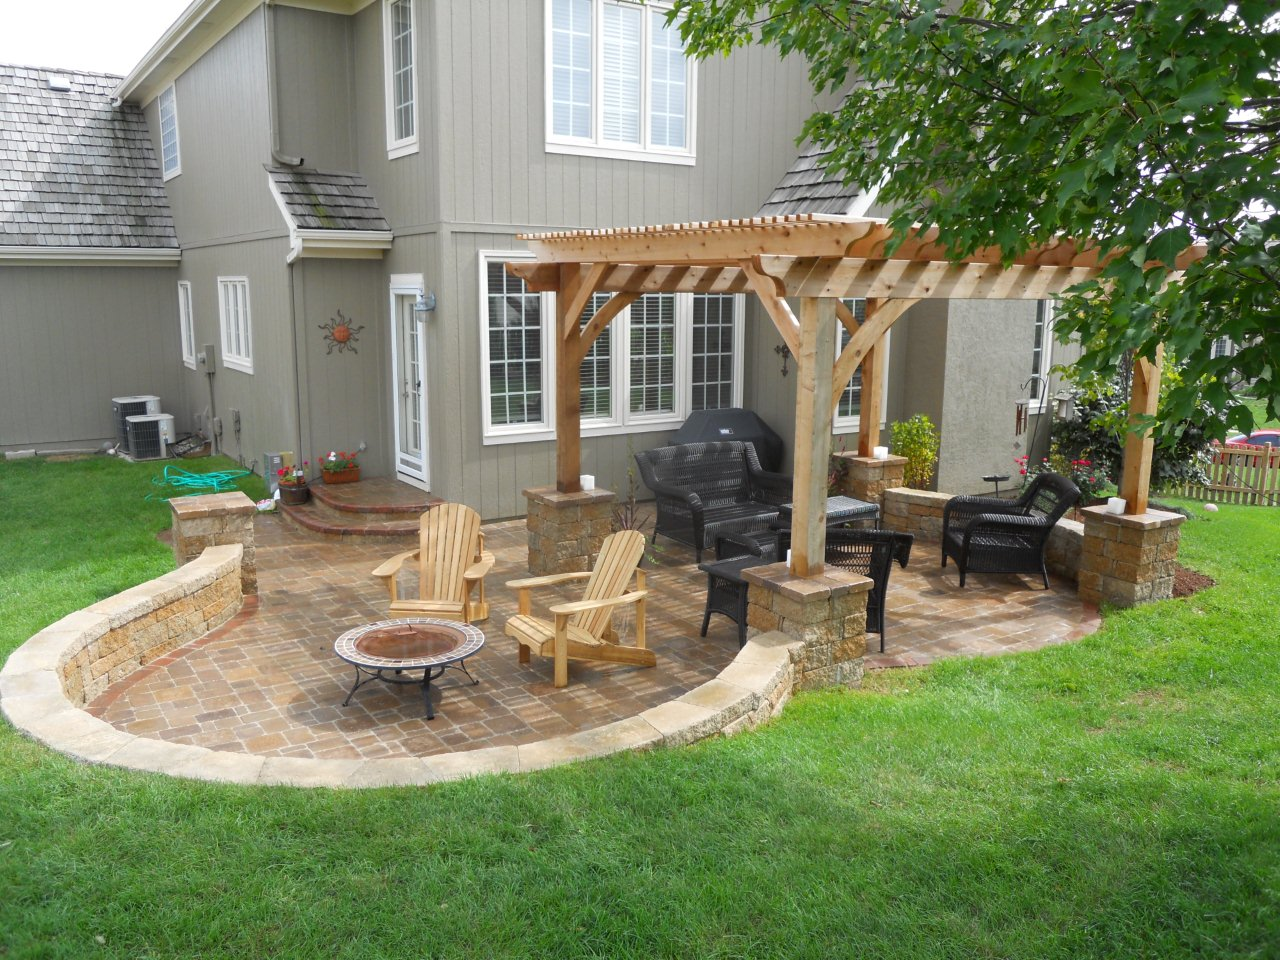 Paver patio hardscape | Archadeck of Kansas City on Patio With Deck Ideas id=82262